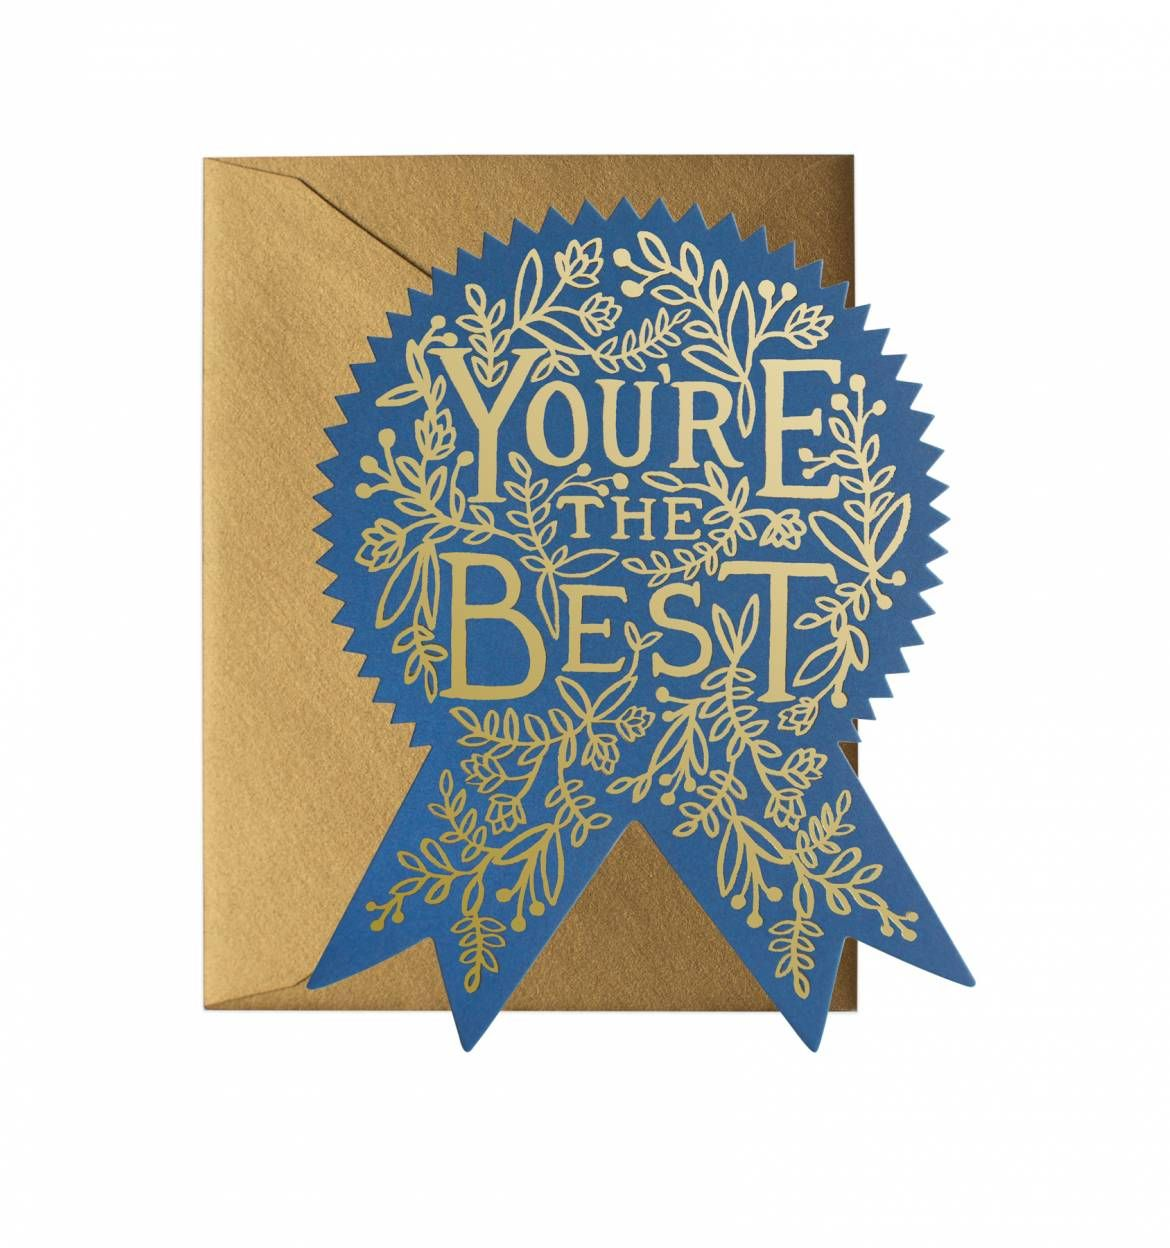 Youre the best available as a single die cut flat note or boxed youre the best greeting card kristyandbryce Image collections